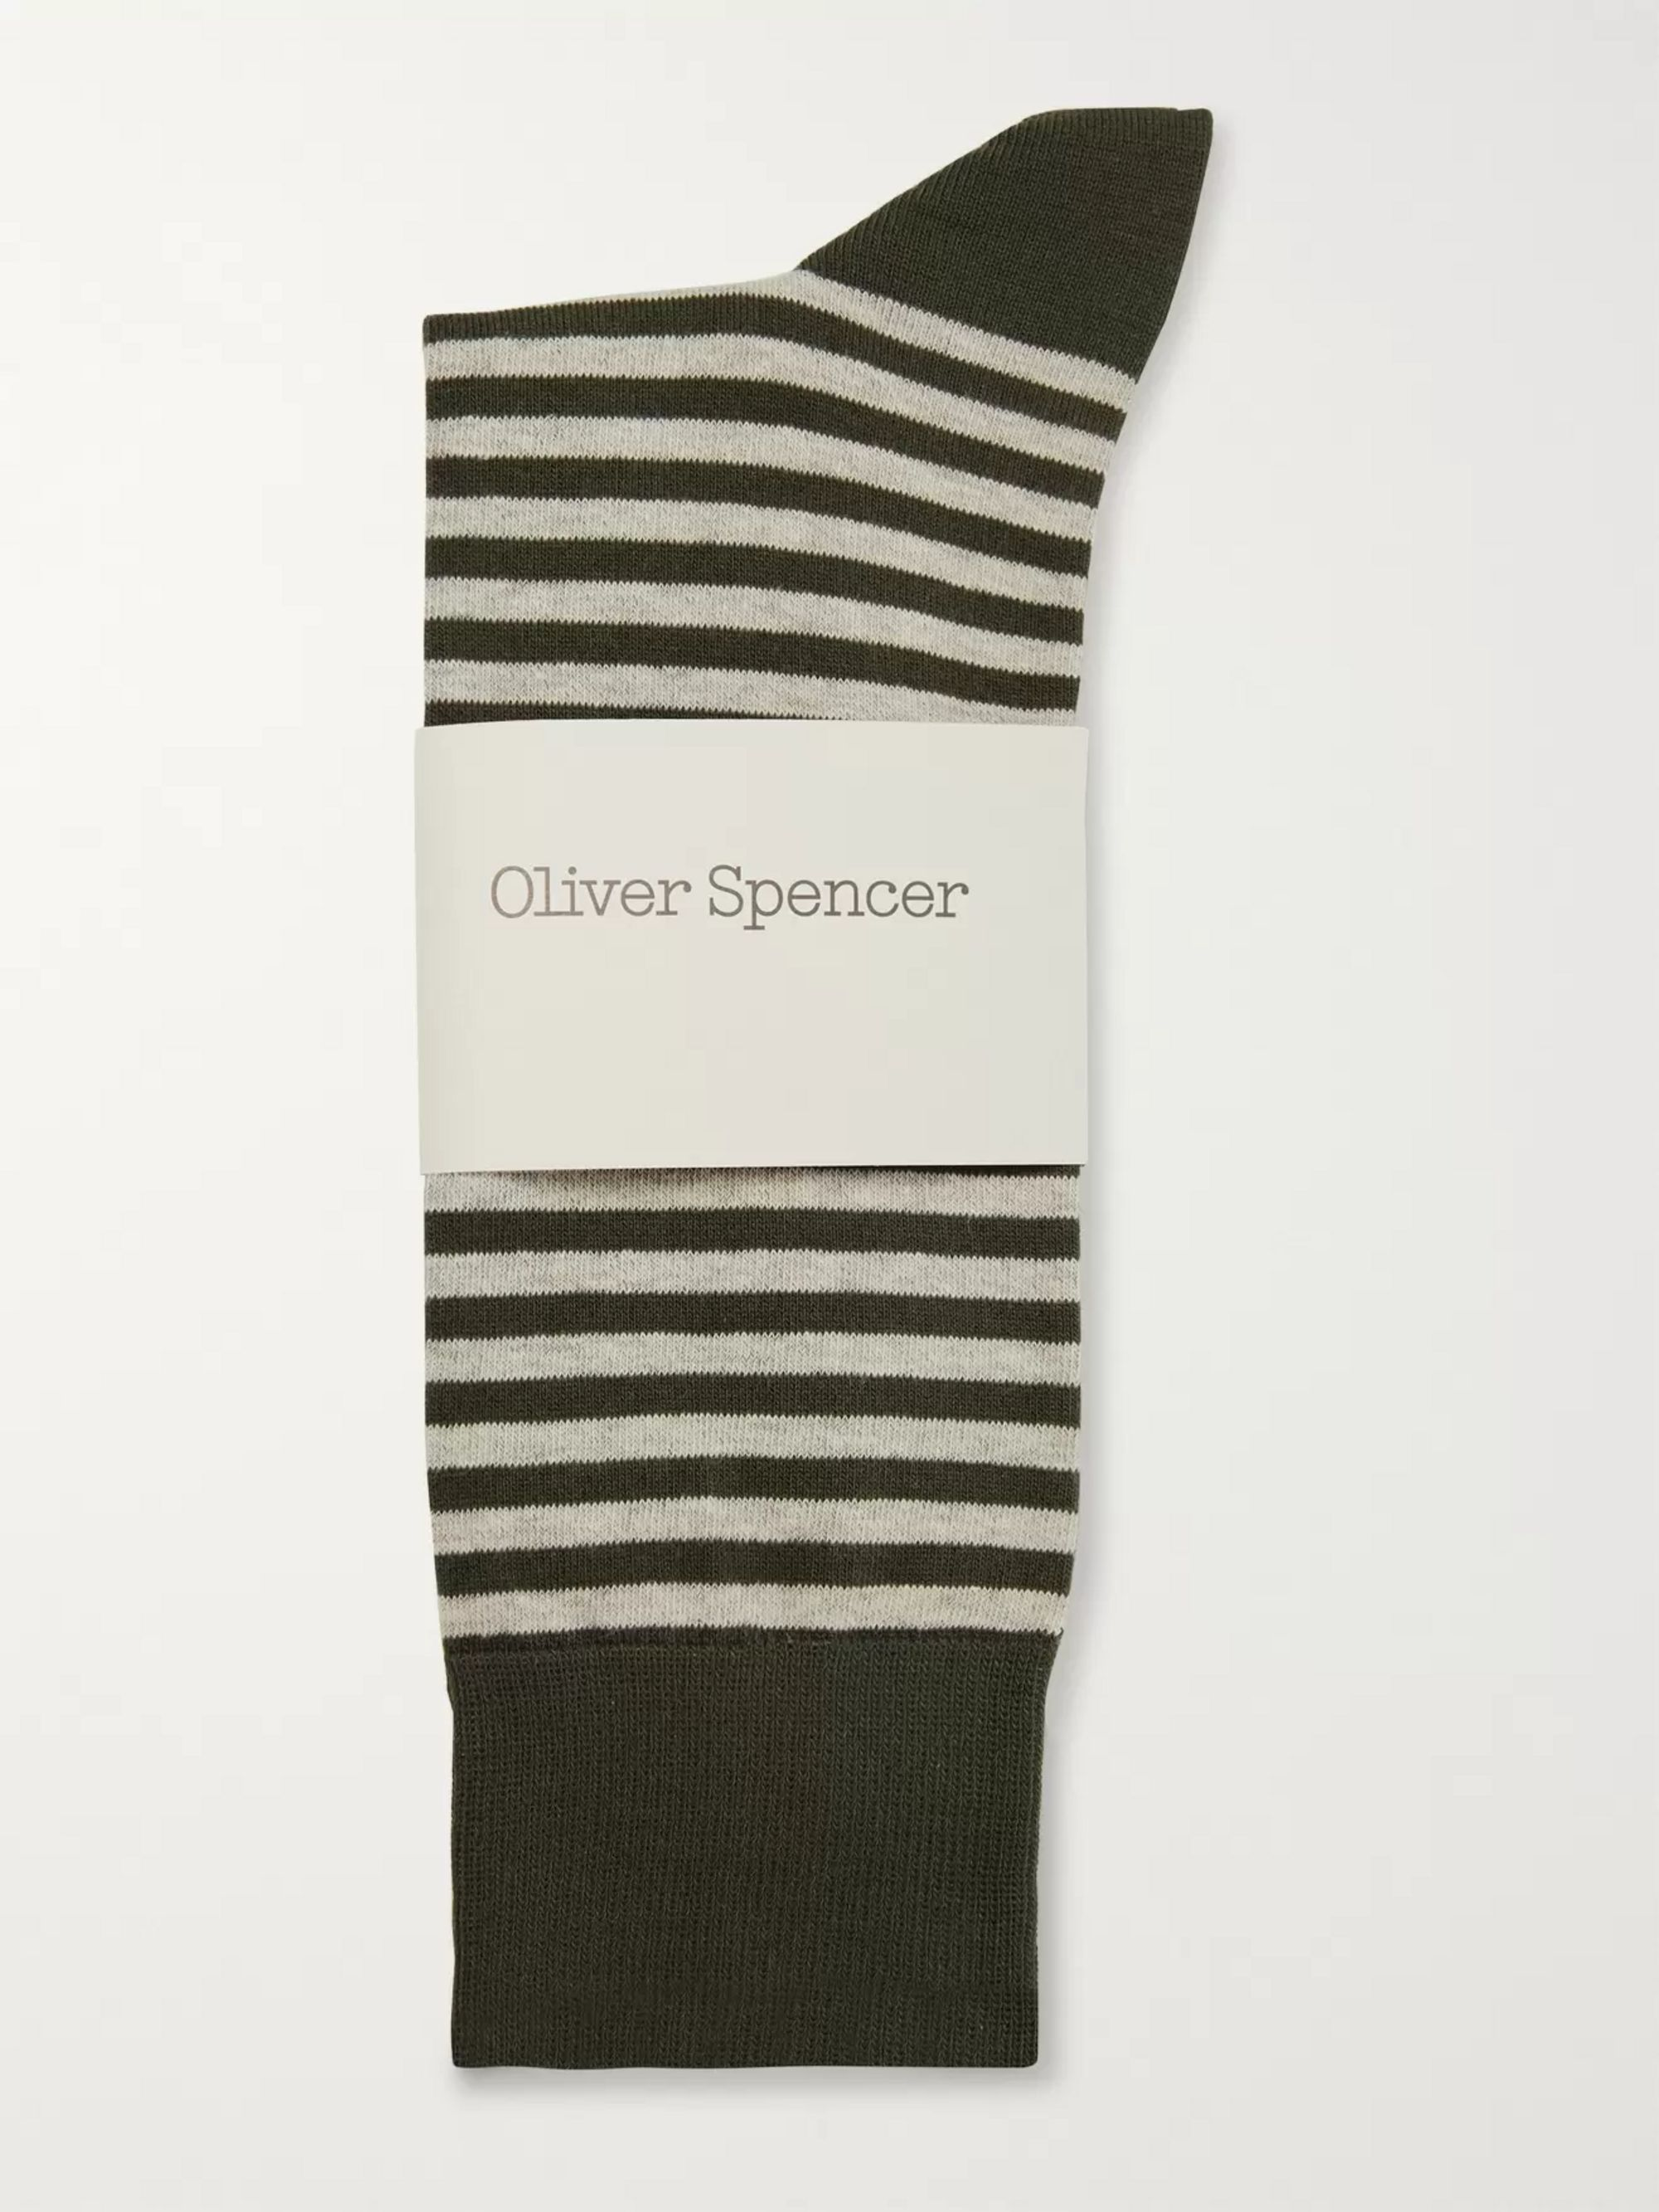 Oliver Spencer Loungewear Striped Stretch Cotton-Blend Socks